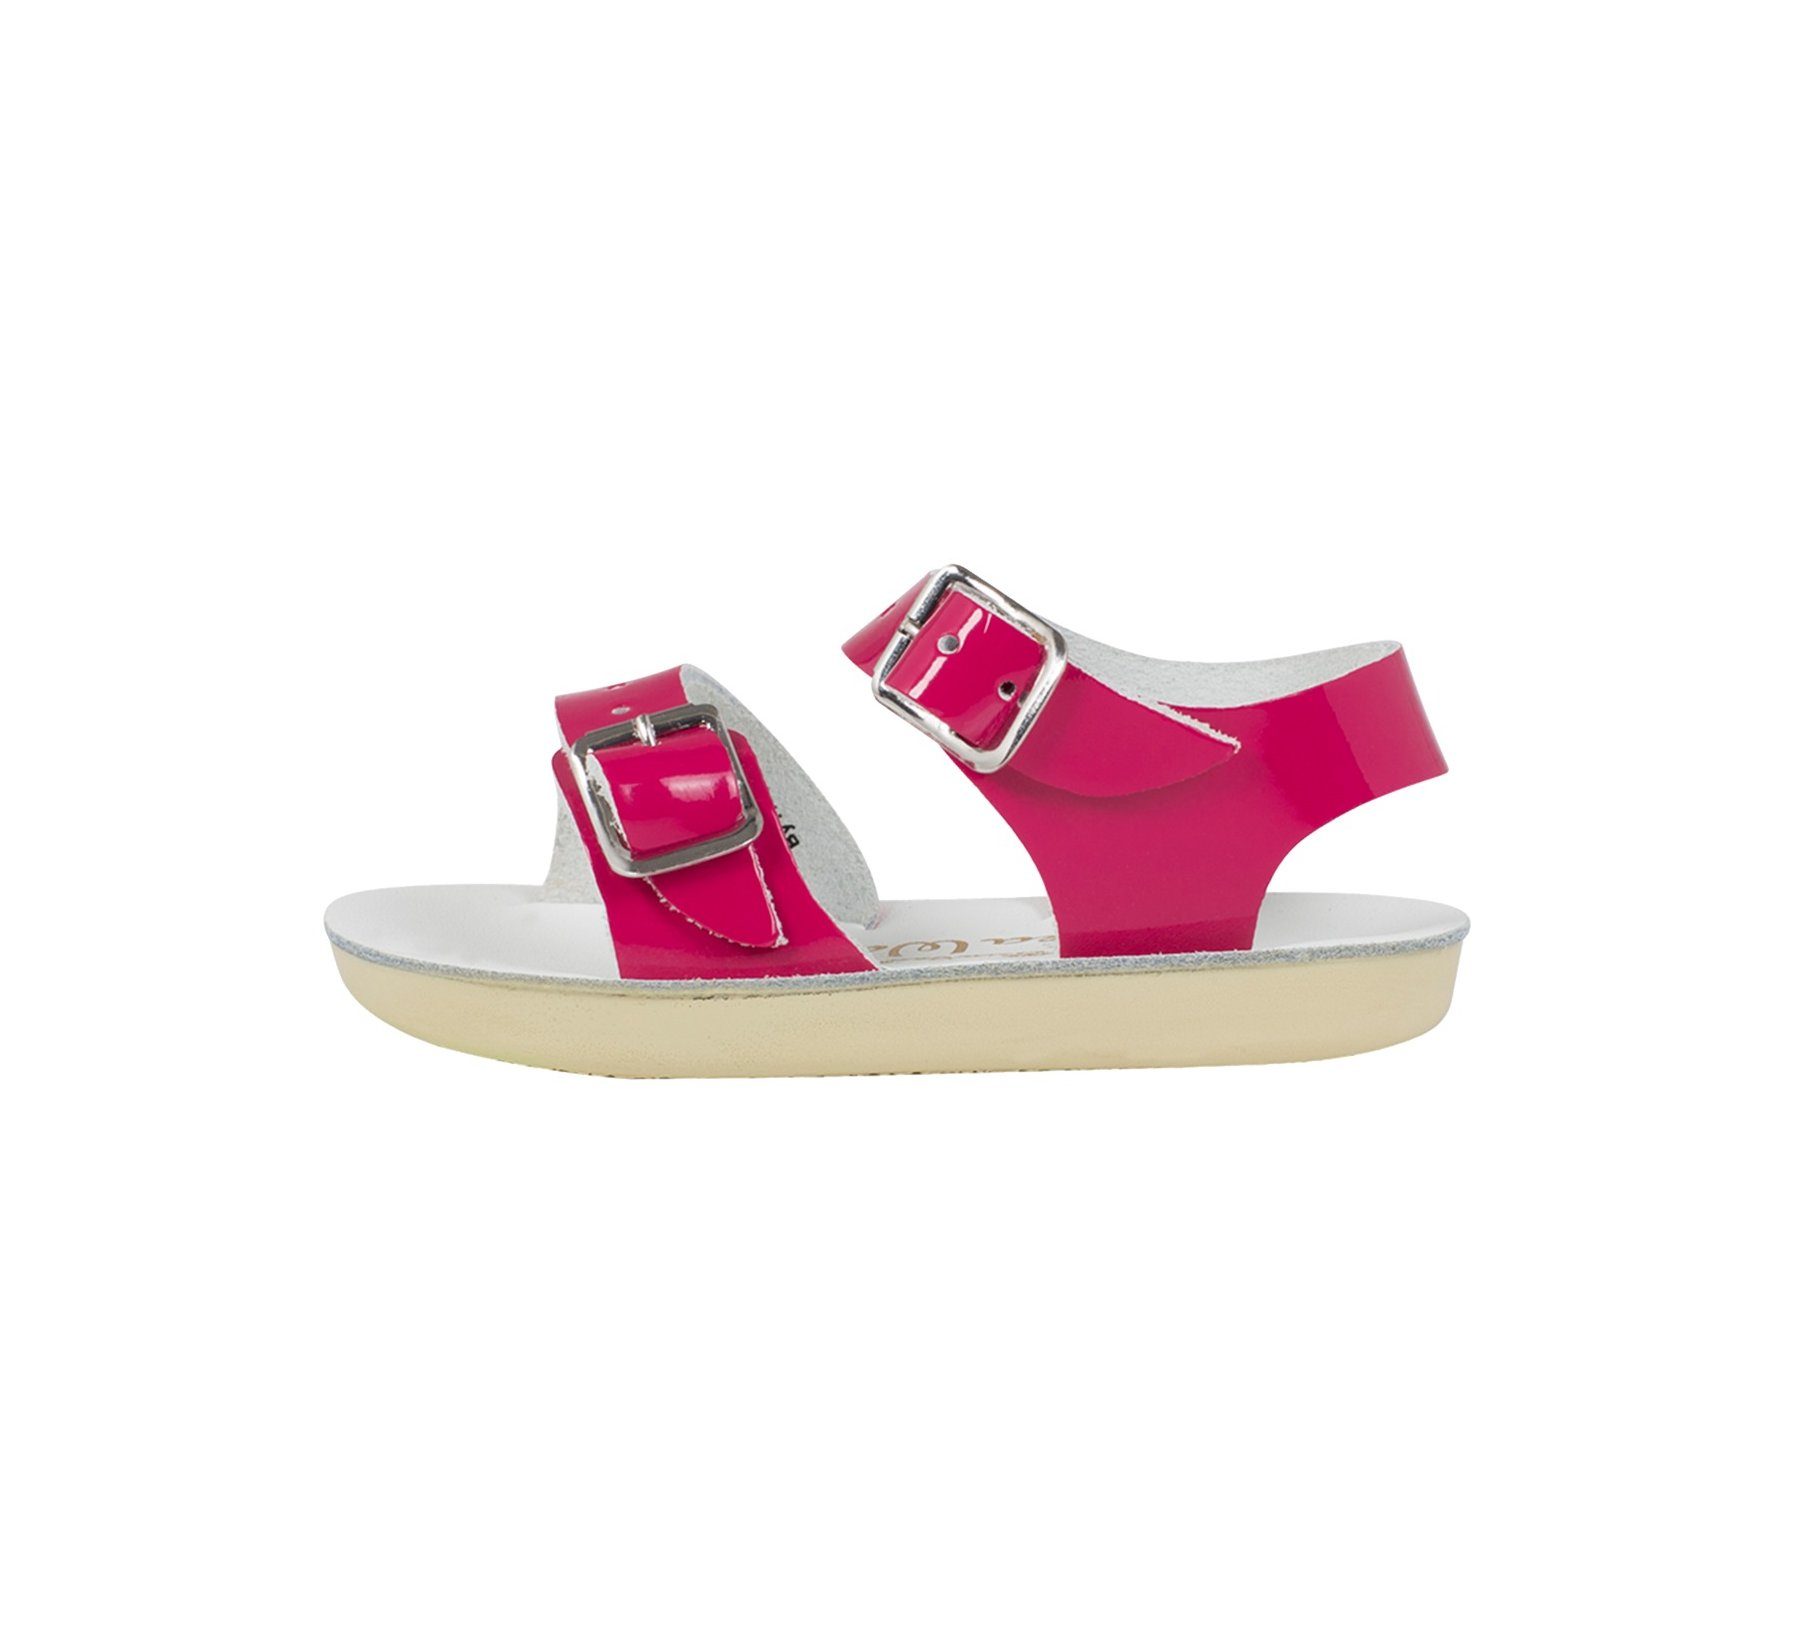 Seawee Shiny Fuchsia - Salt Water Sandals